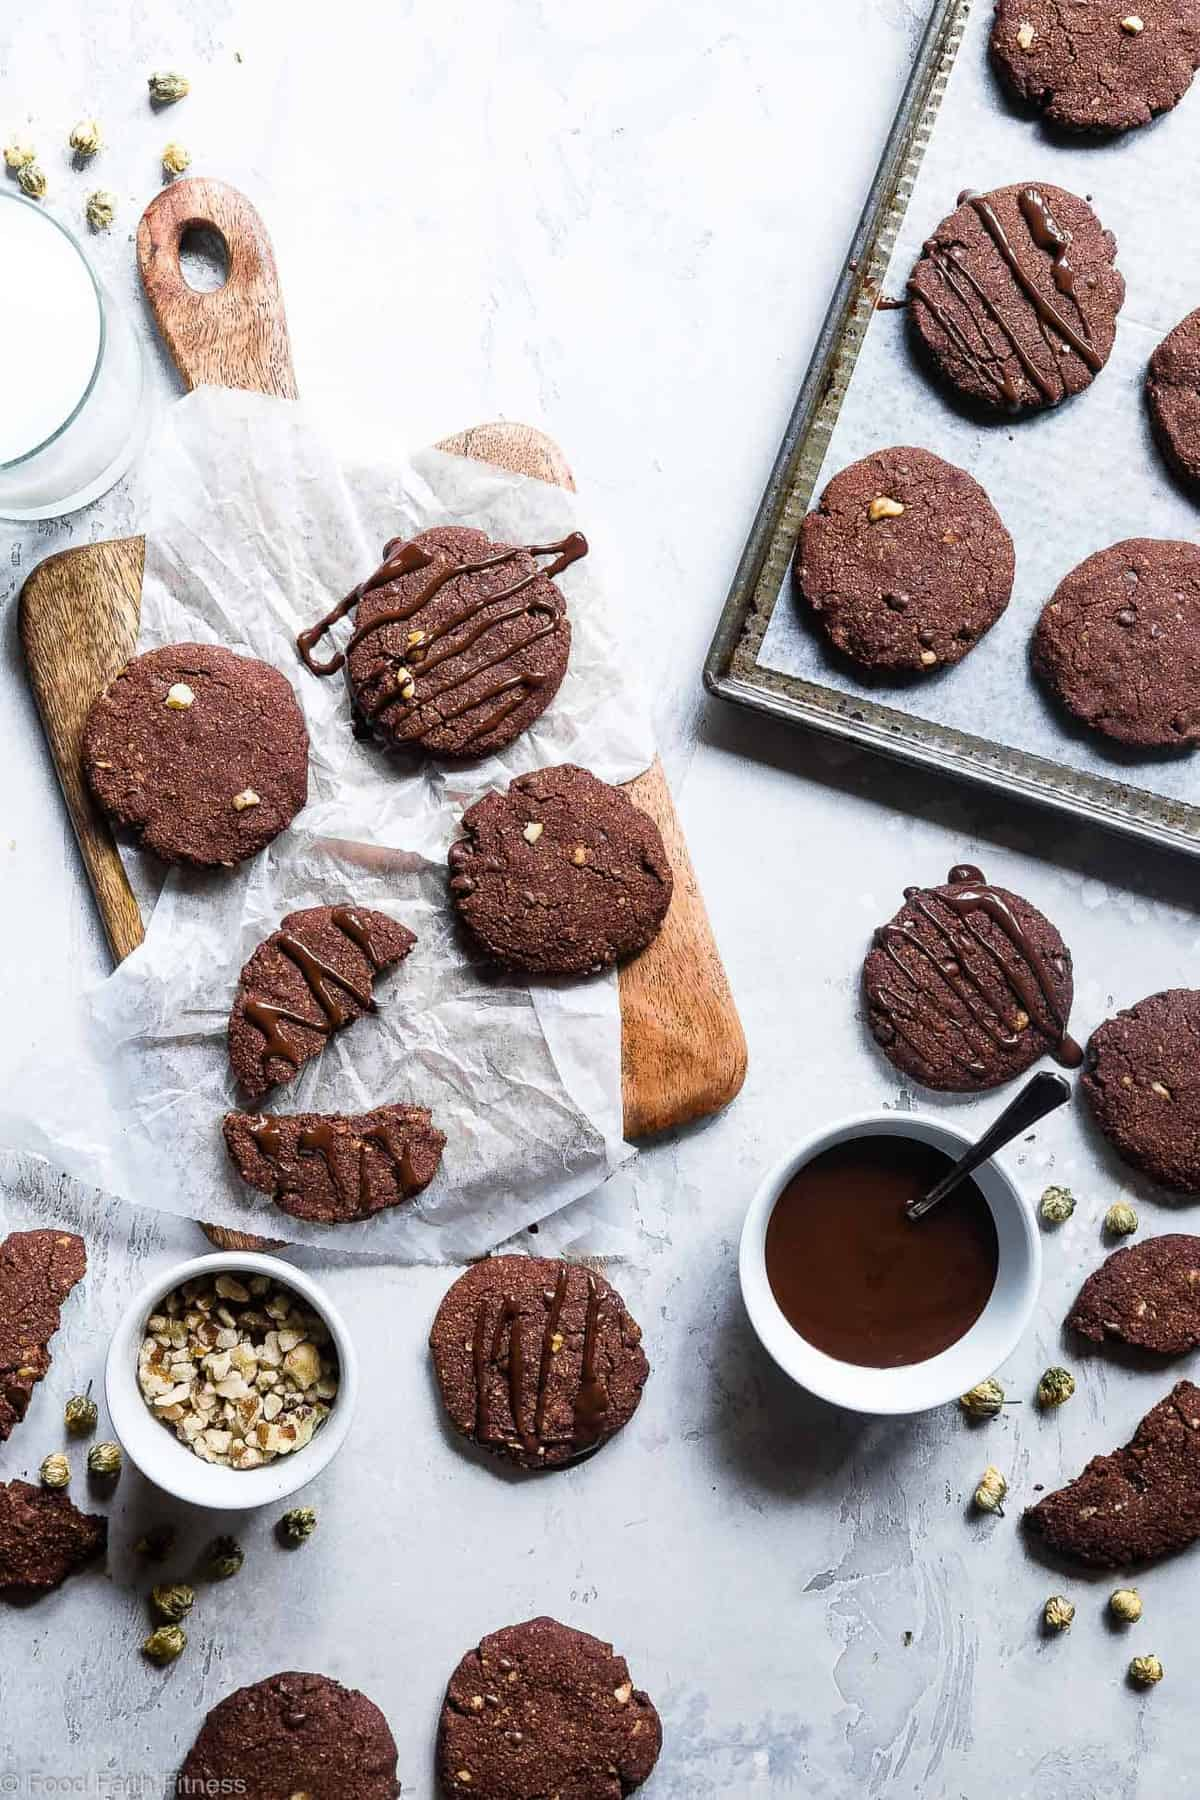 Vegan Gluten Free Brownie Cookies - These healthy and gluten free Chocolate Cookies are like always getting the edge piece - SO dense and chewy! You won't believe they're gluten free, paleo and only 120 calories! | #Foodfaithfitness | #Vegan #Paleo #Glutenfree #Dairyfree #Healthy